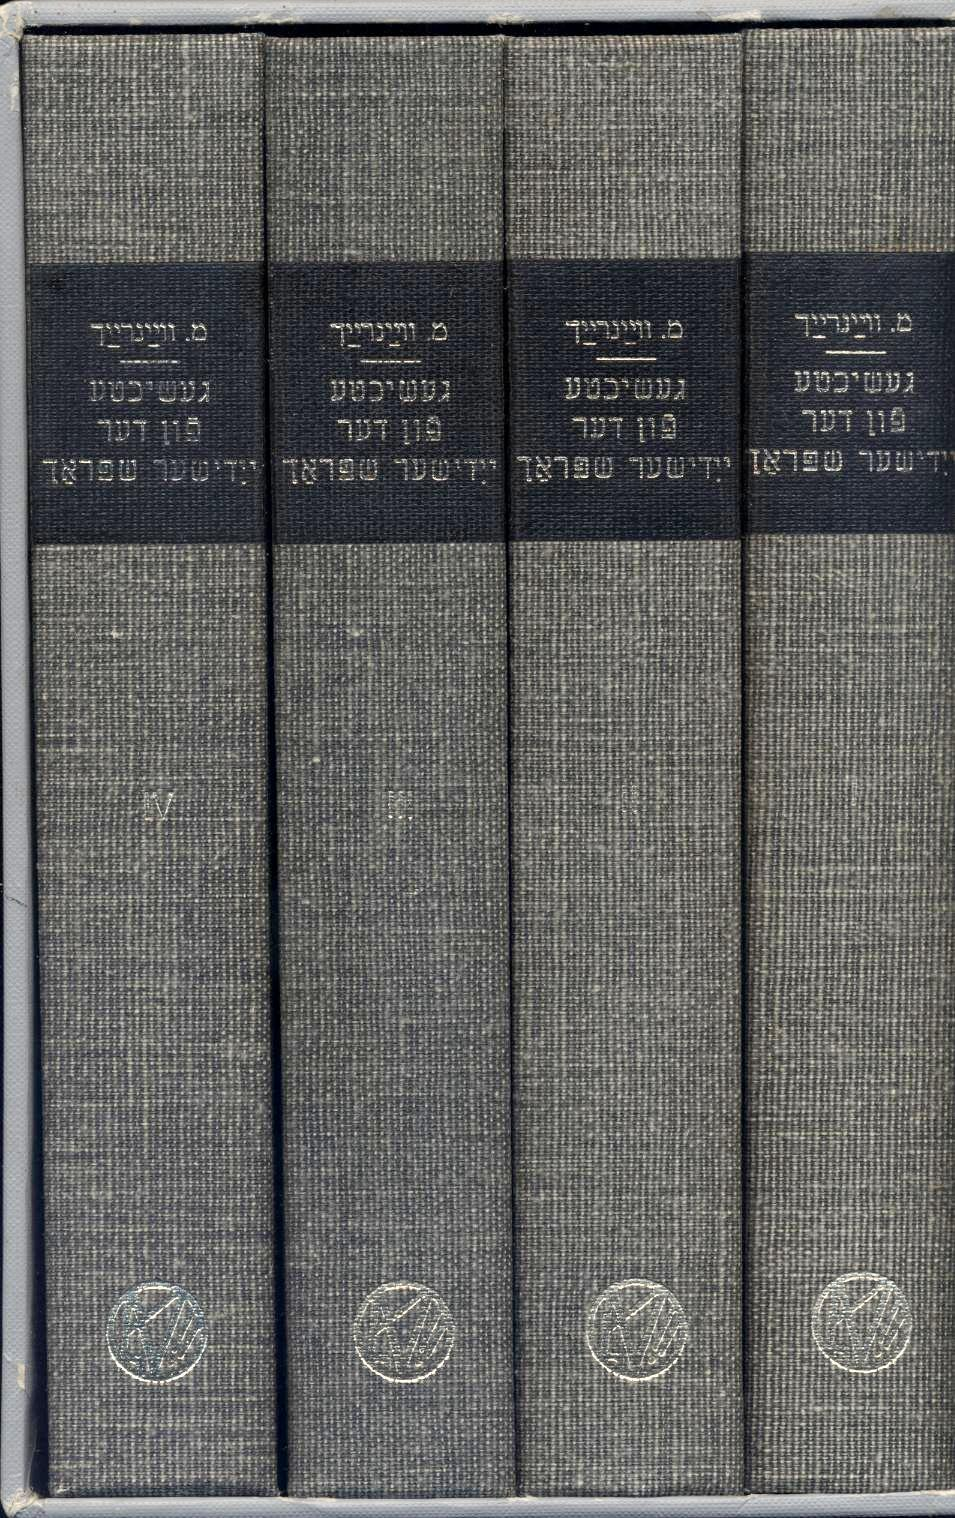 "<p>The four volumes of Max Weinreich&#8217;s <em>Geshikhte fun der yidisher shprakh </em>(<a href=""http://www.danwymanbooks.com/images/YID-16-21.jpg"">via</a>)</p>"